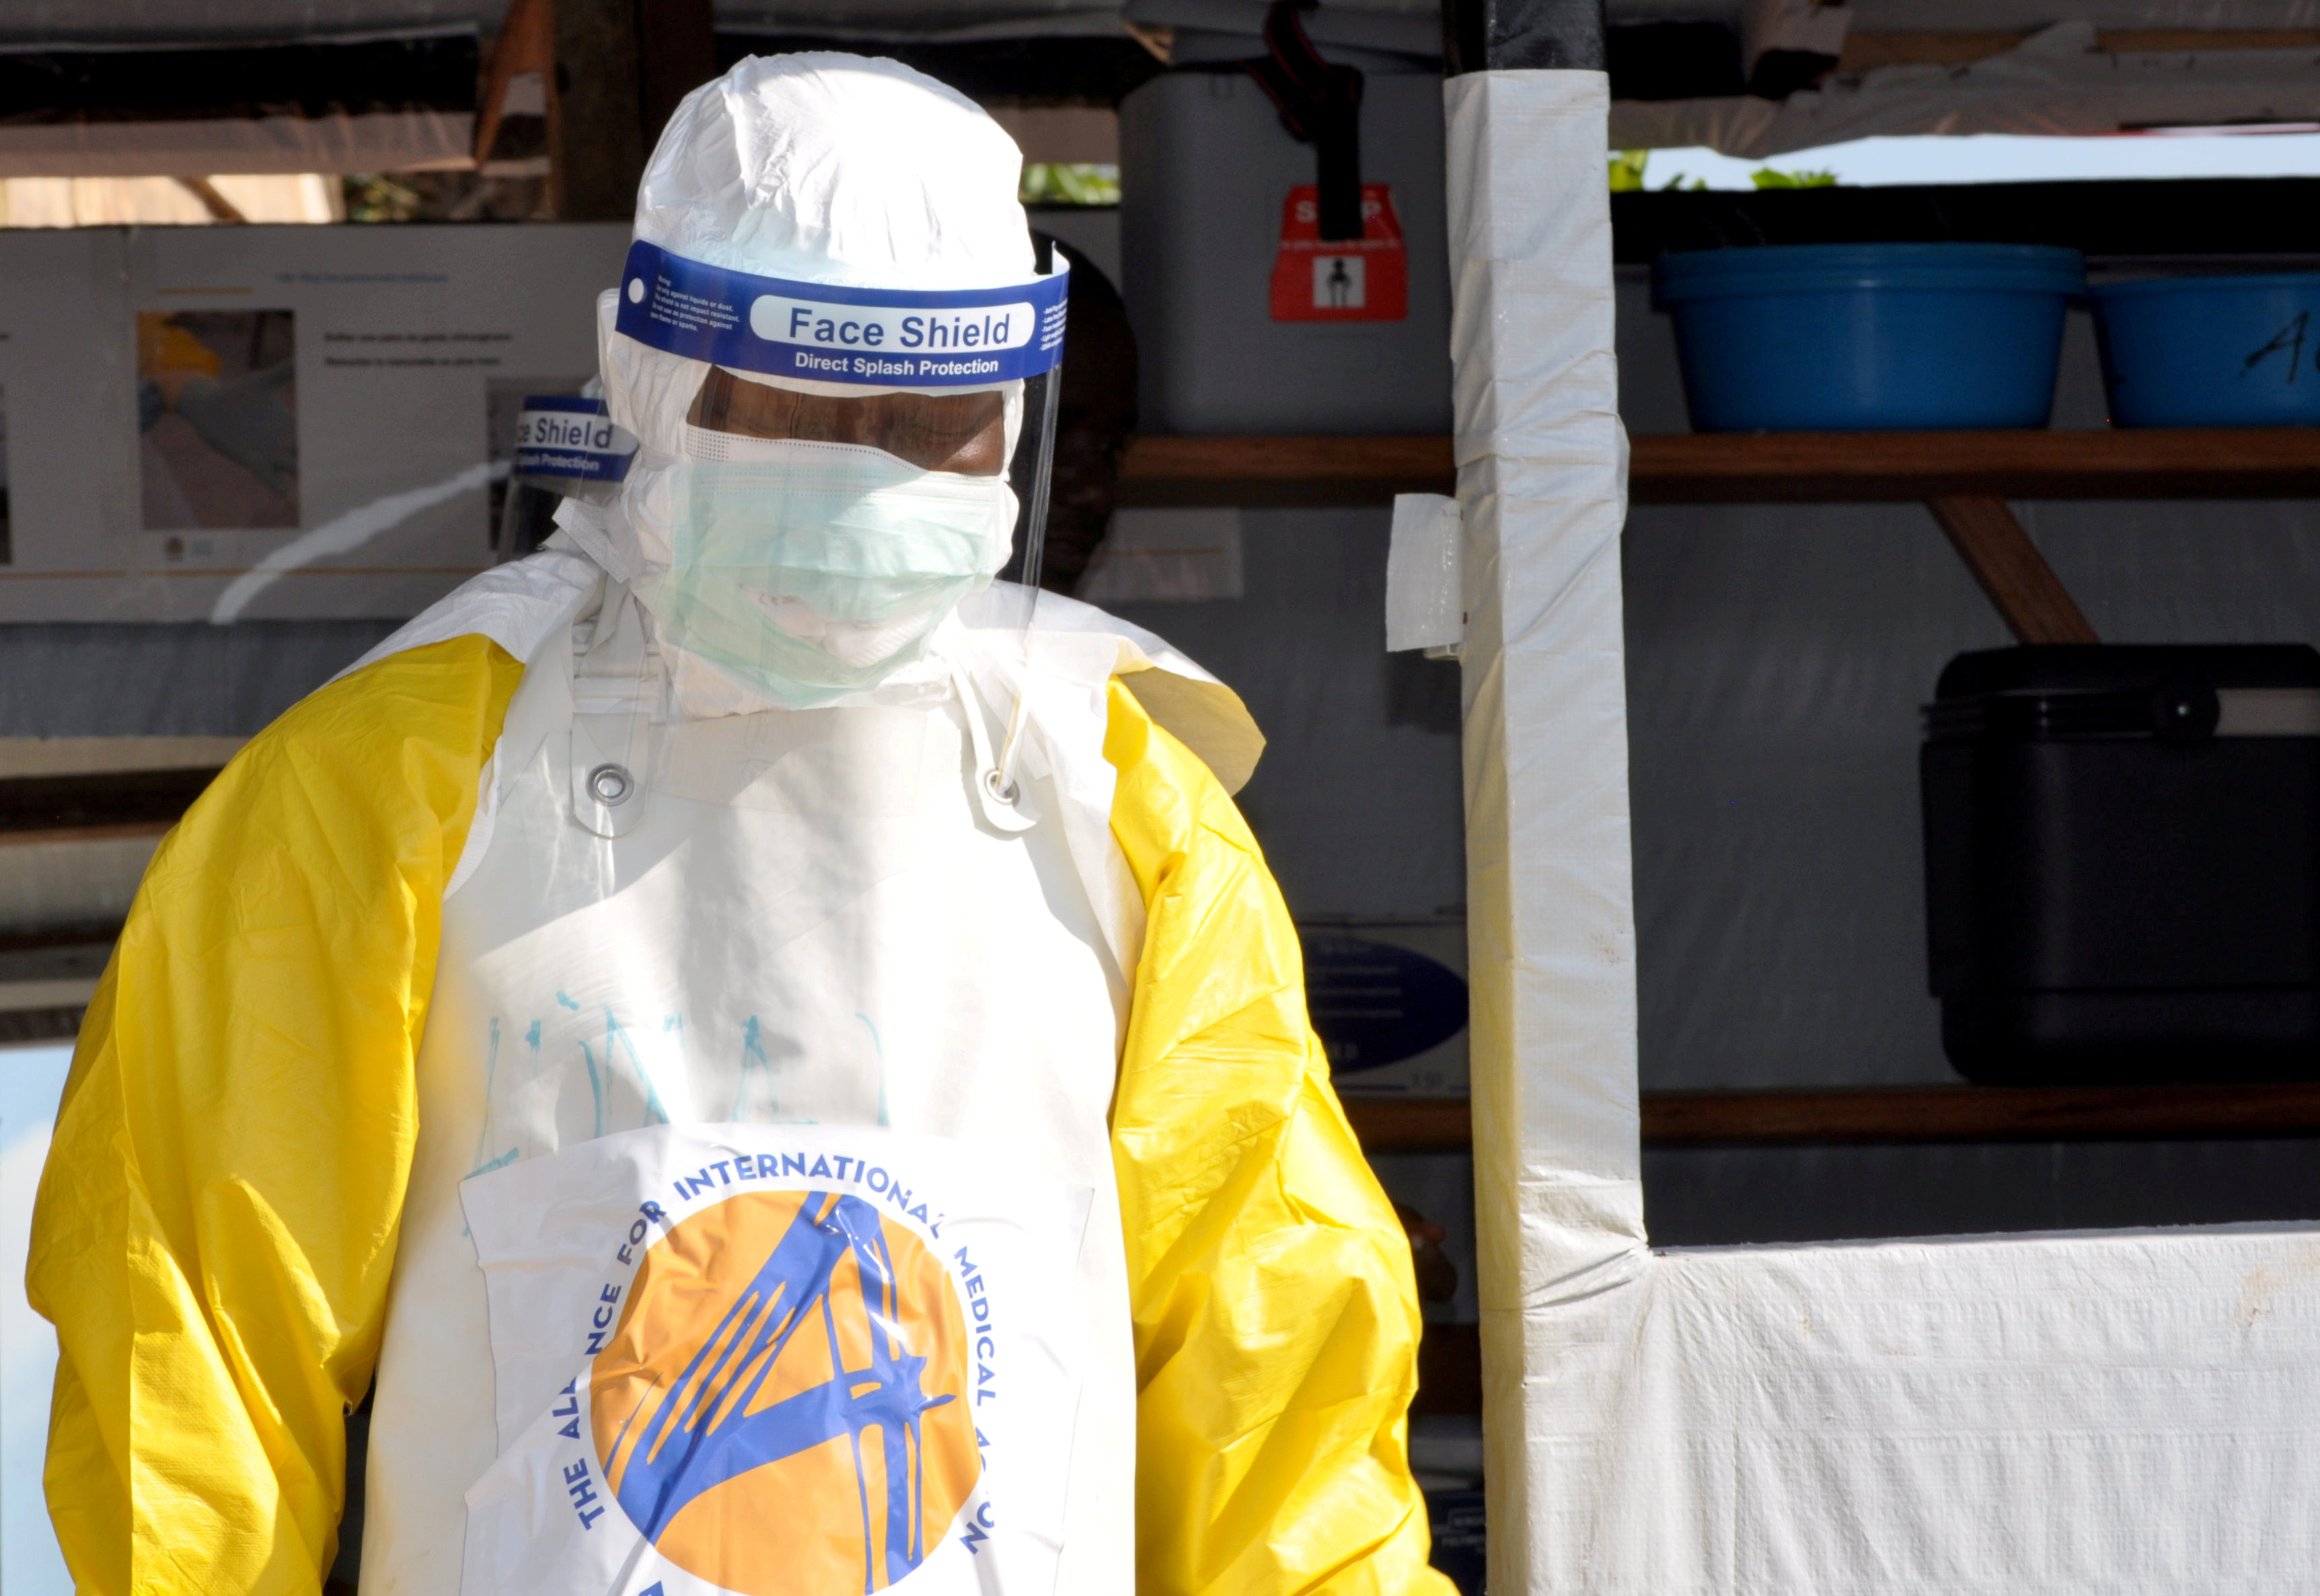 FILE PHOTO: A medical worker wears a protective suit as he prepares to administer Ebola patient care at The Alliance for International Medical Action (ALIMA) treatment center in Beni, North Kivu province of the Democratic Republic of Congo September 6, 2018. REUTERS/Fiston Mahamba/File Photo